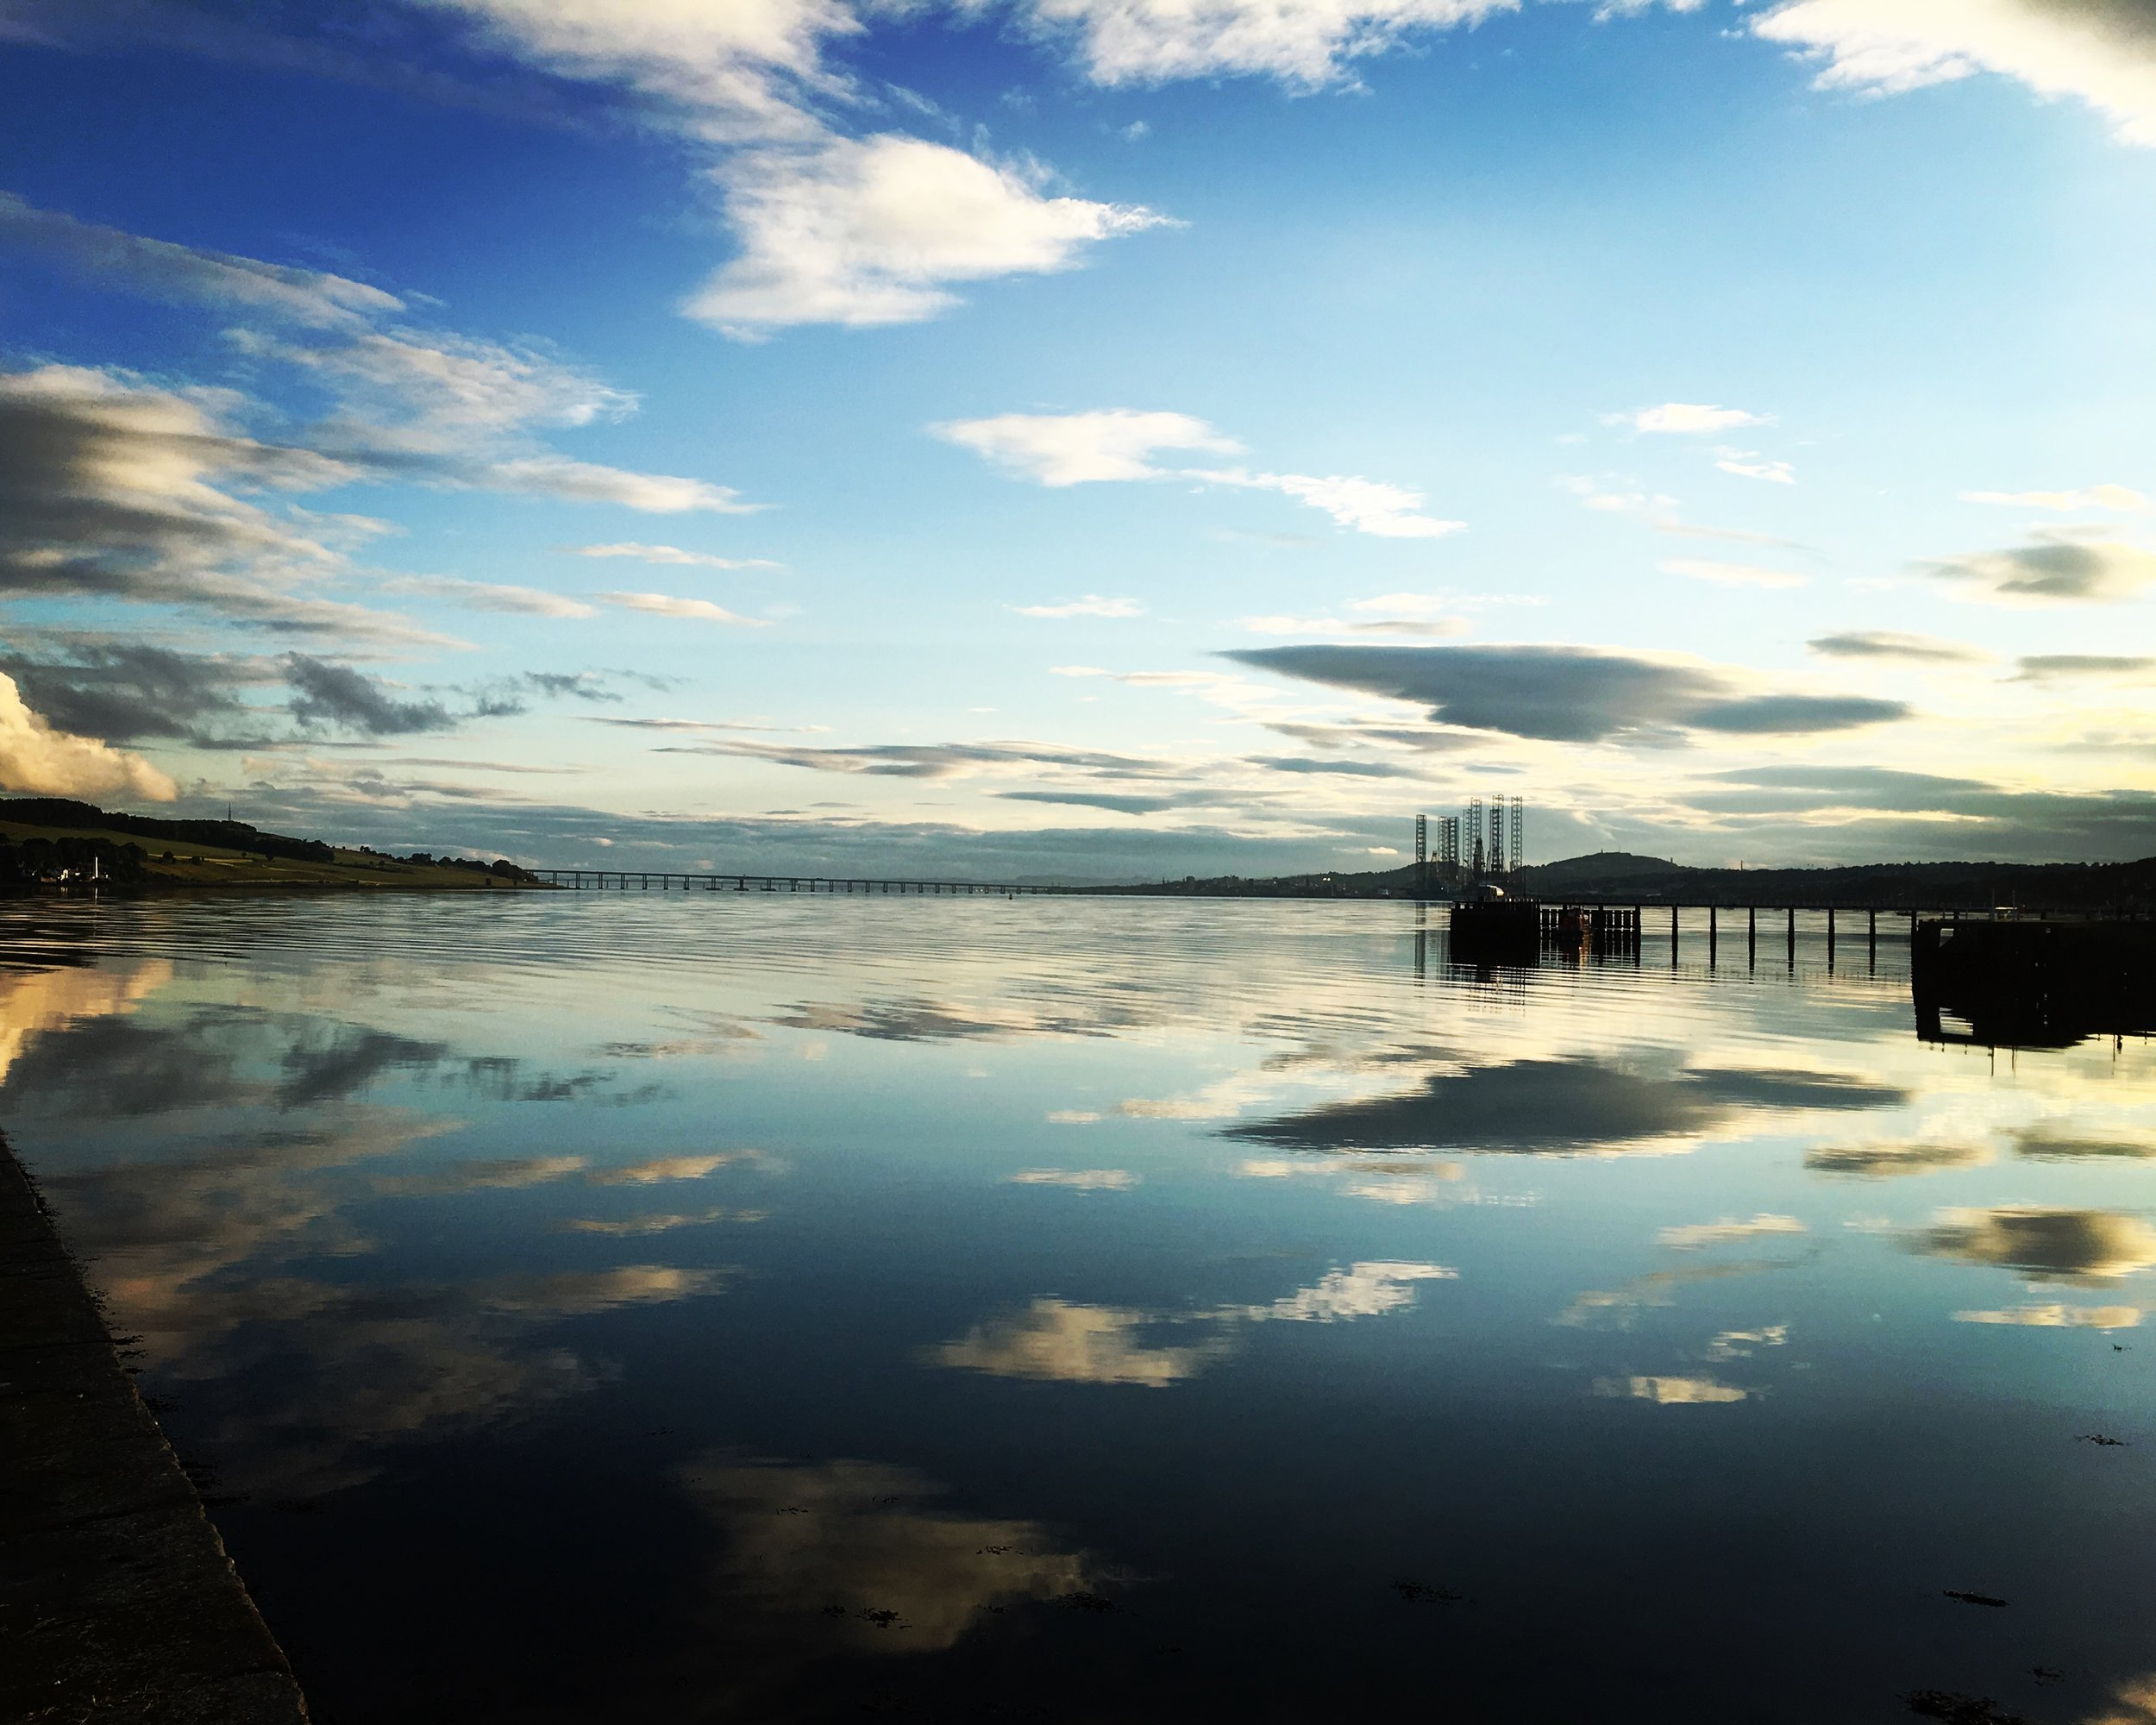 Life is a River - Archie Whitewater. Home - Dundee. The mighty River Tay from Broughty Ferry.